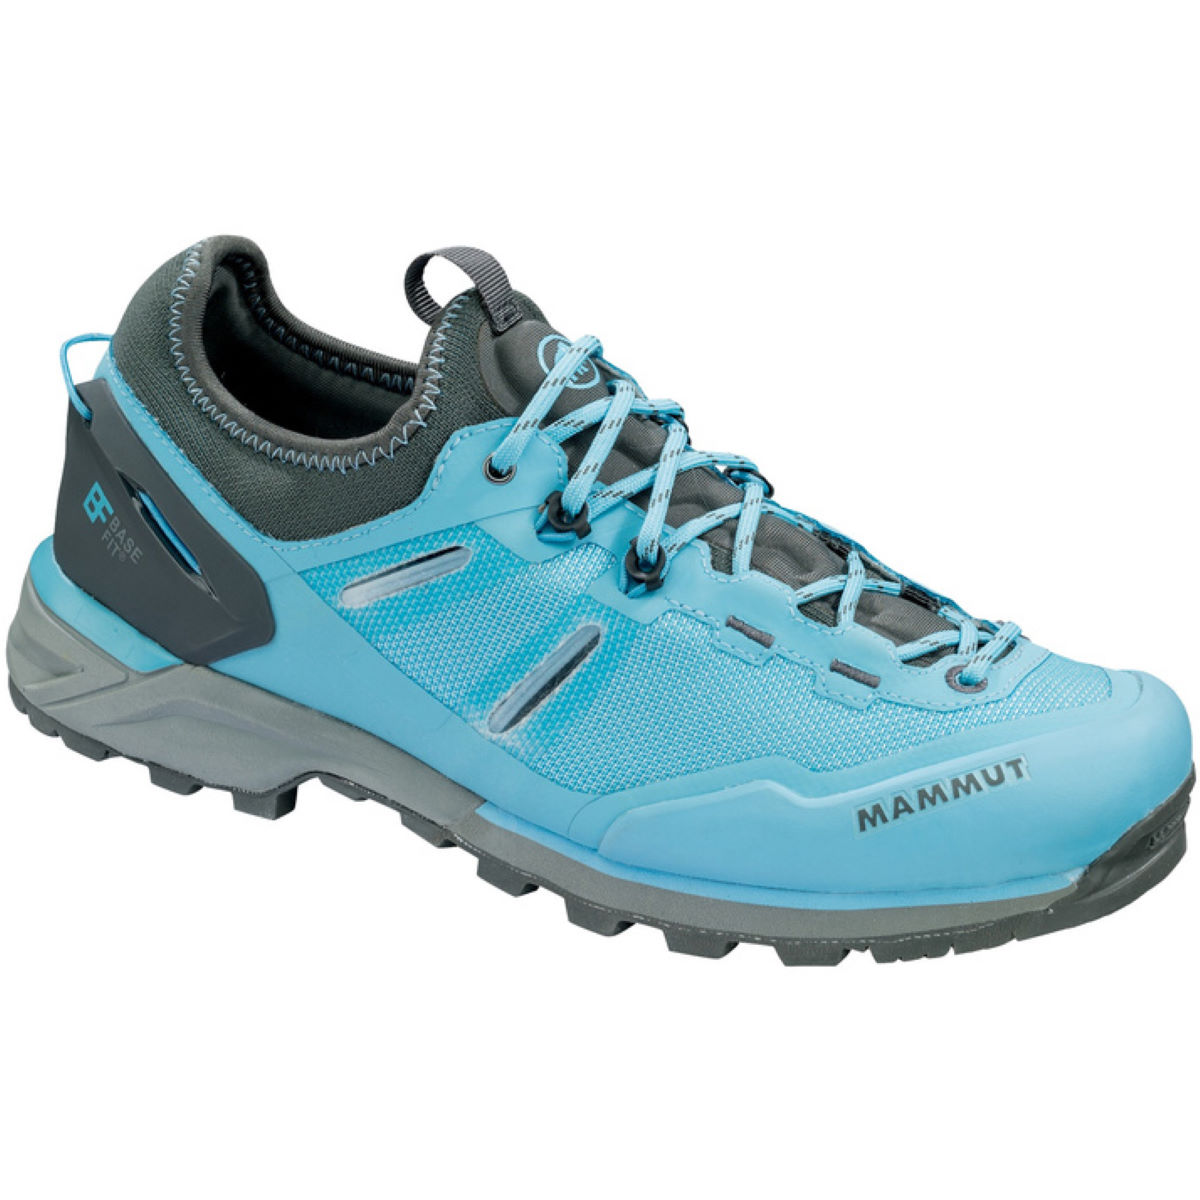 mammut Mammut womens Alnasca Knit Low Shoes   Shoes